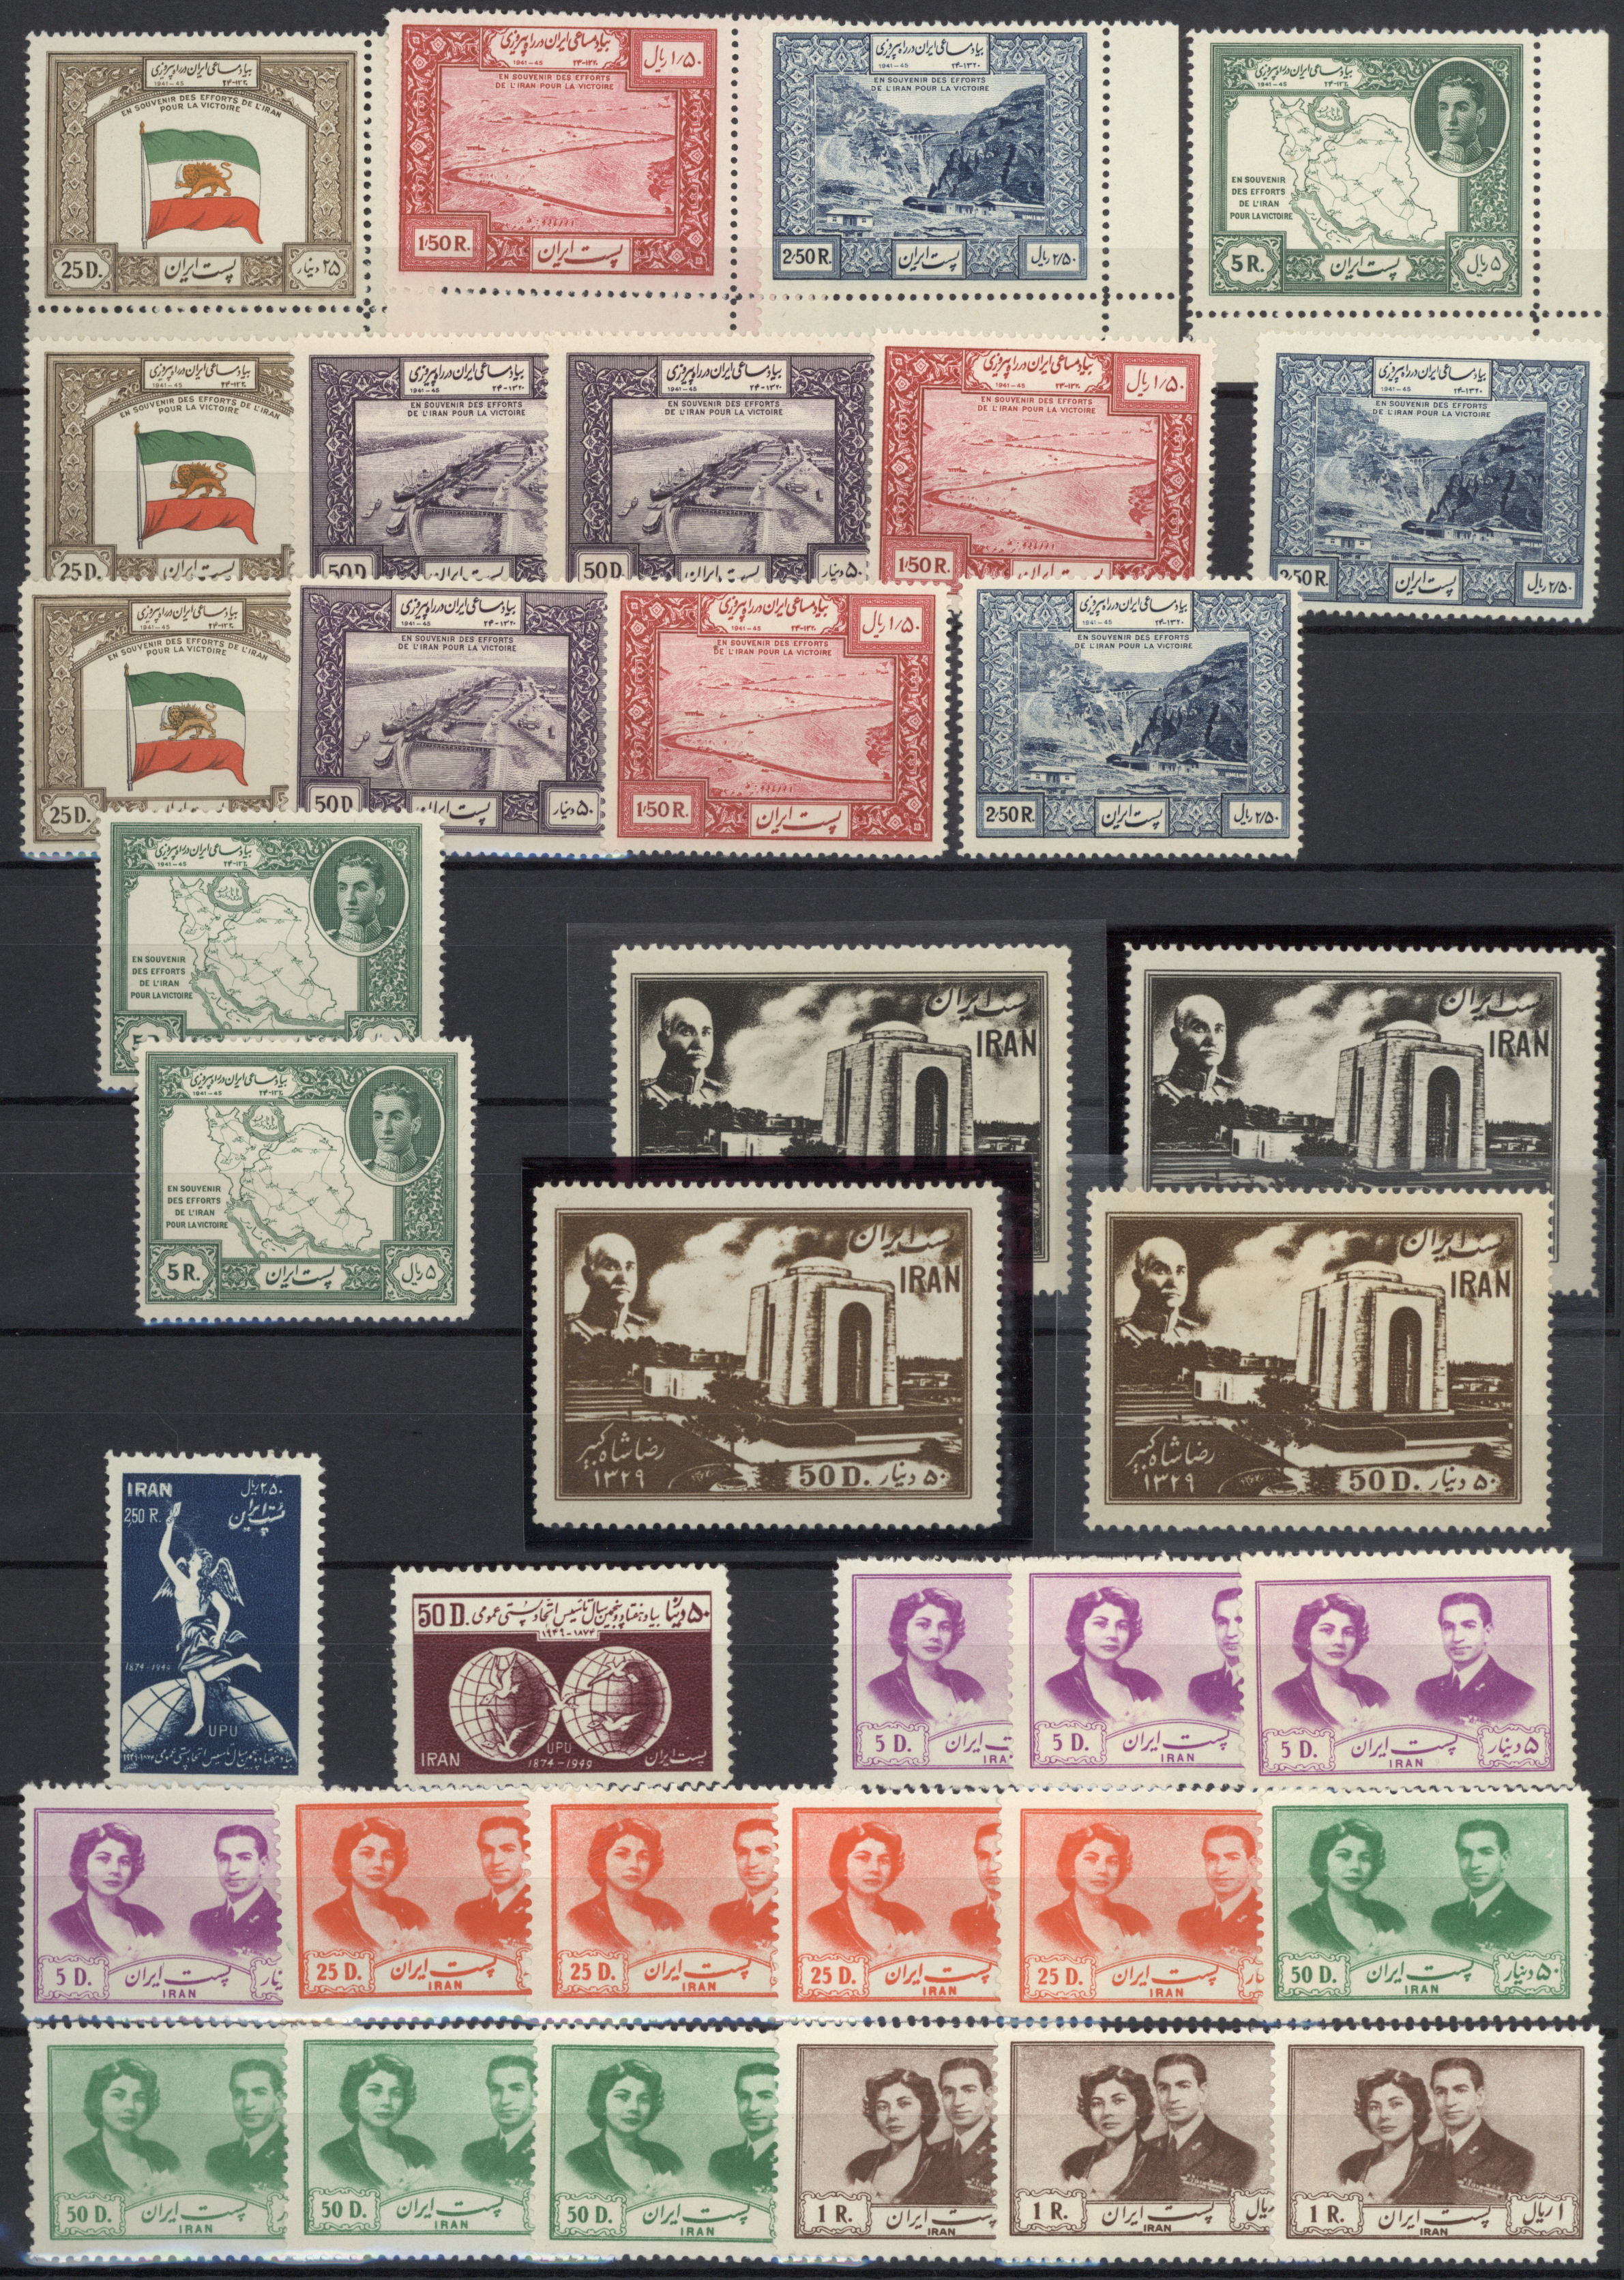 Lot 34524 - iran  -  Auktionshaus Christoph Gärtner GmbH & Co. KG Collections Germany,  Collections Supplement, Surprise boxes #39 Day 7